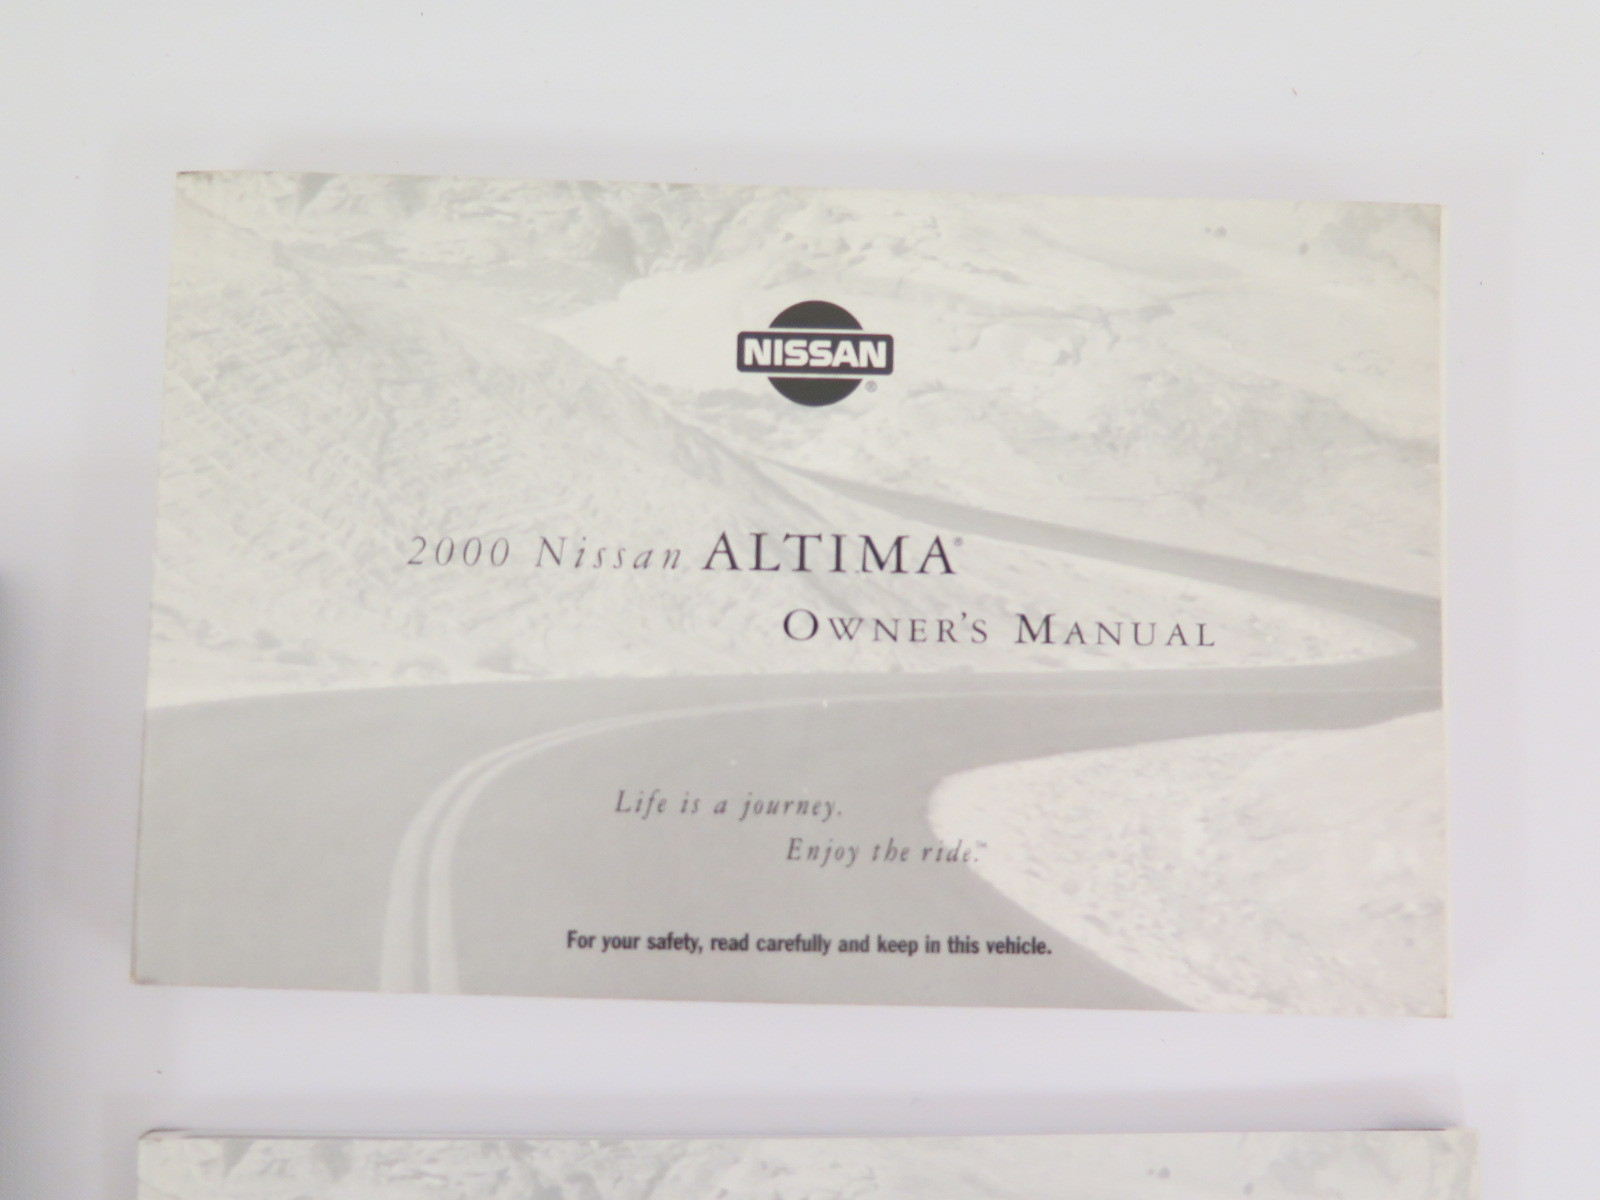 2000 nissan altima owners manual book bashful yak rh bashfulyak com 2000 nissan altima service manual 2004 Nissan Altima